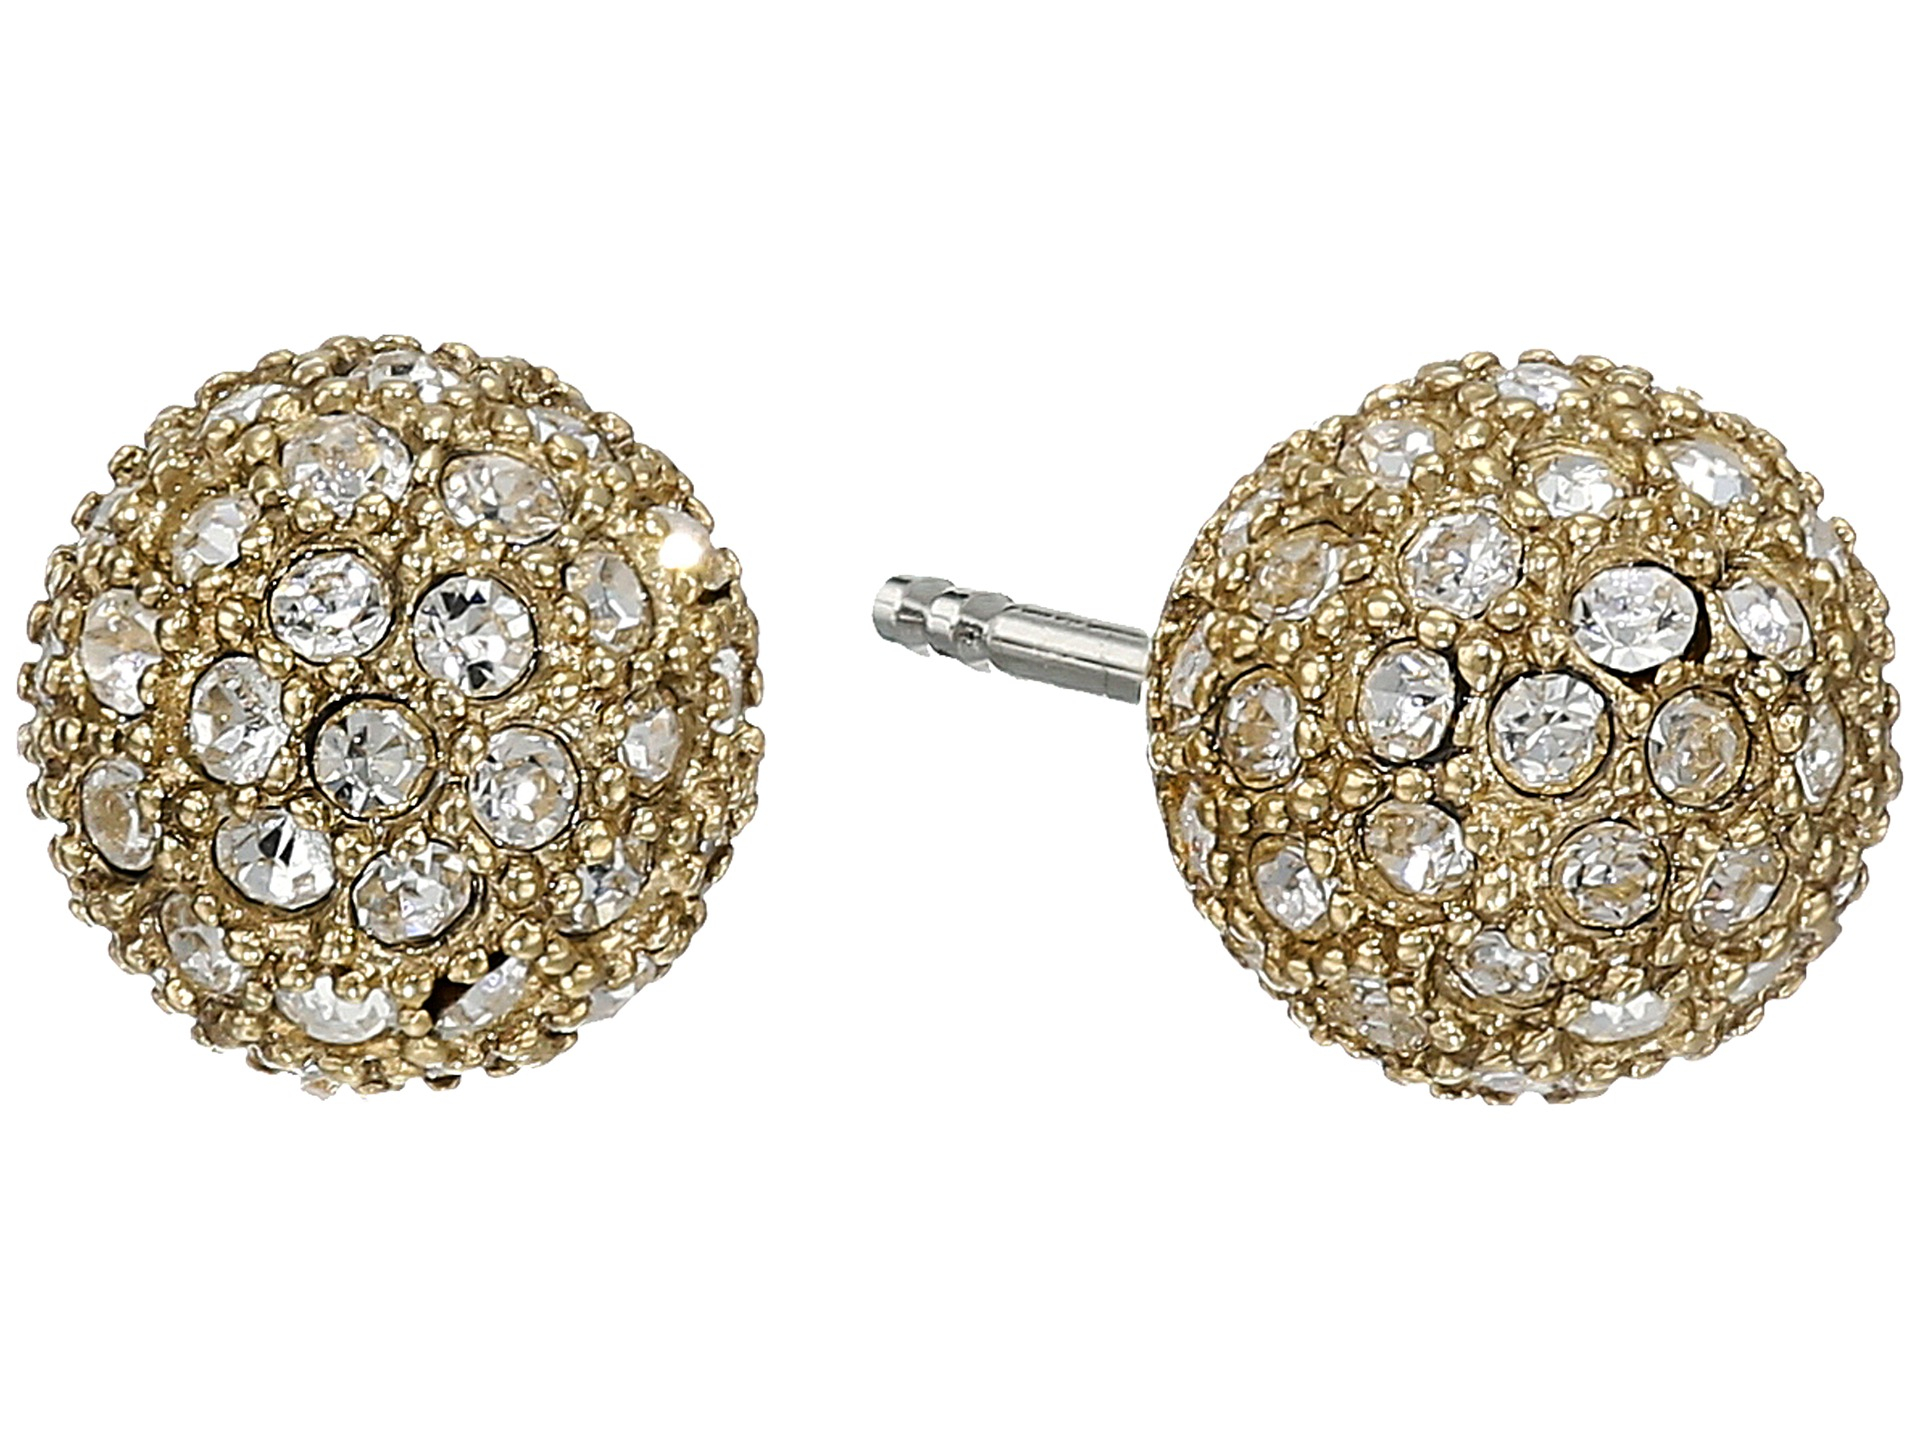 Fossil Pave Ball Studs Earrings in Metallic